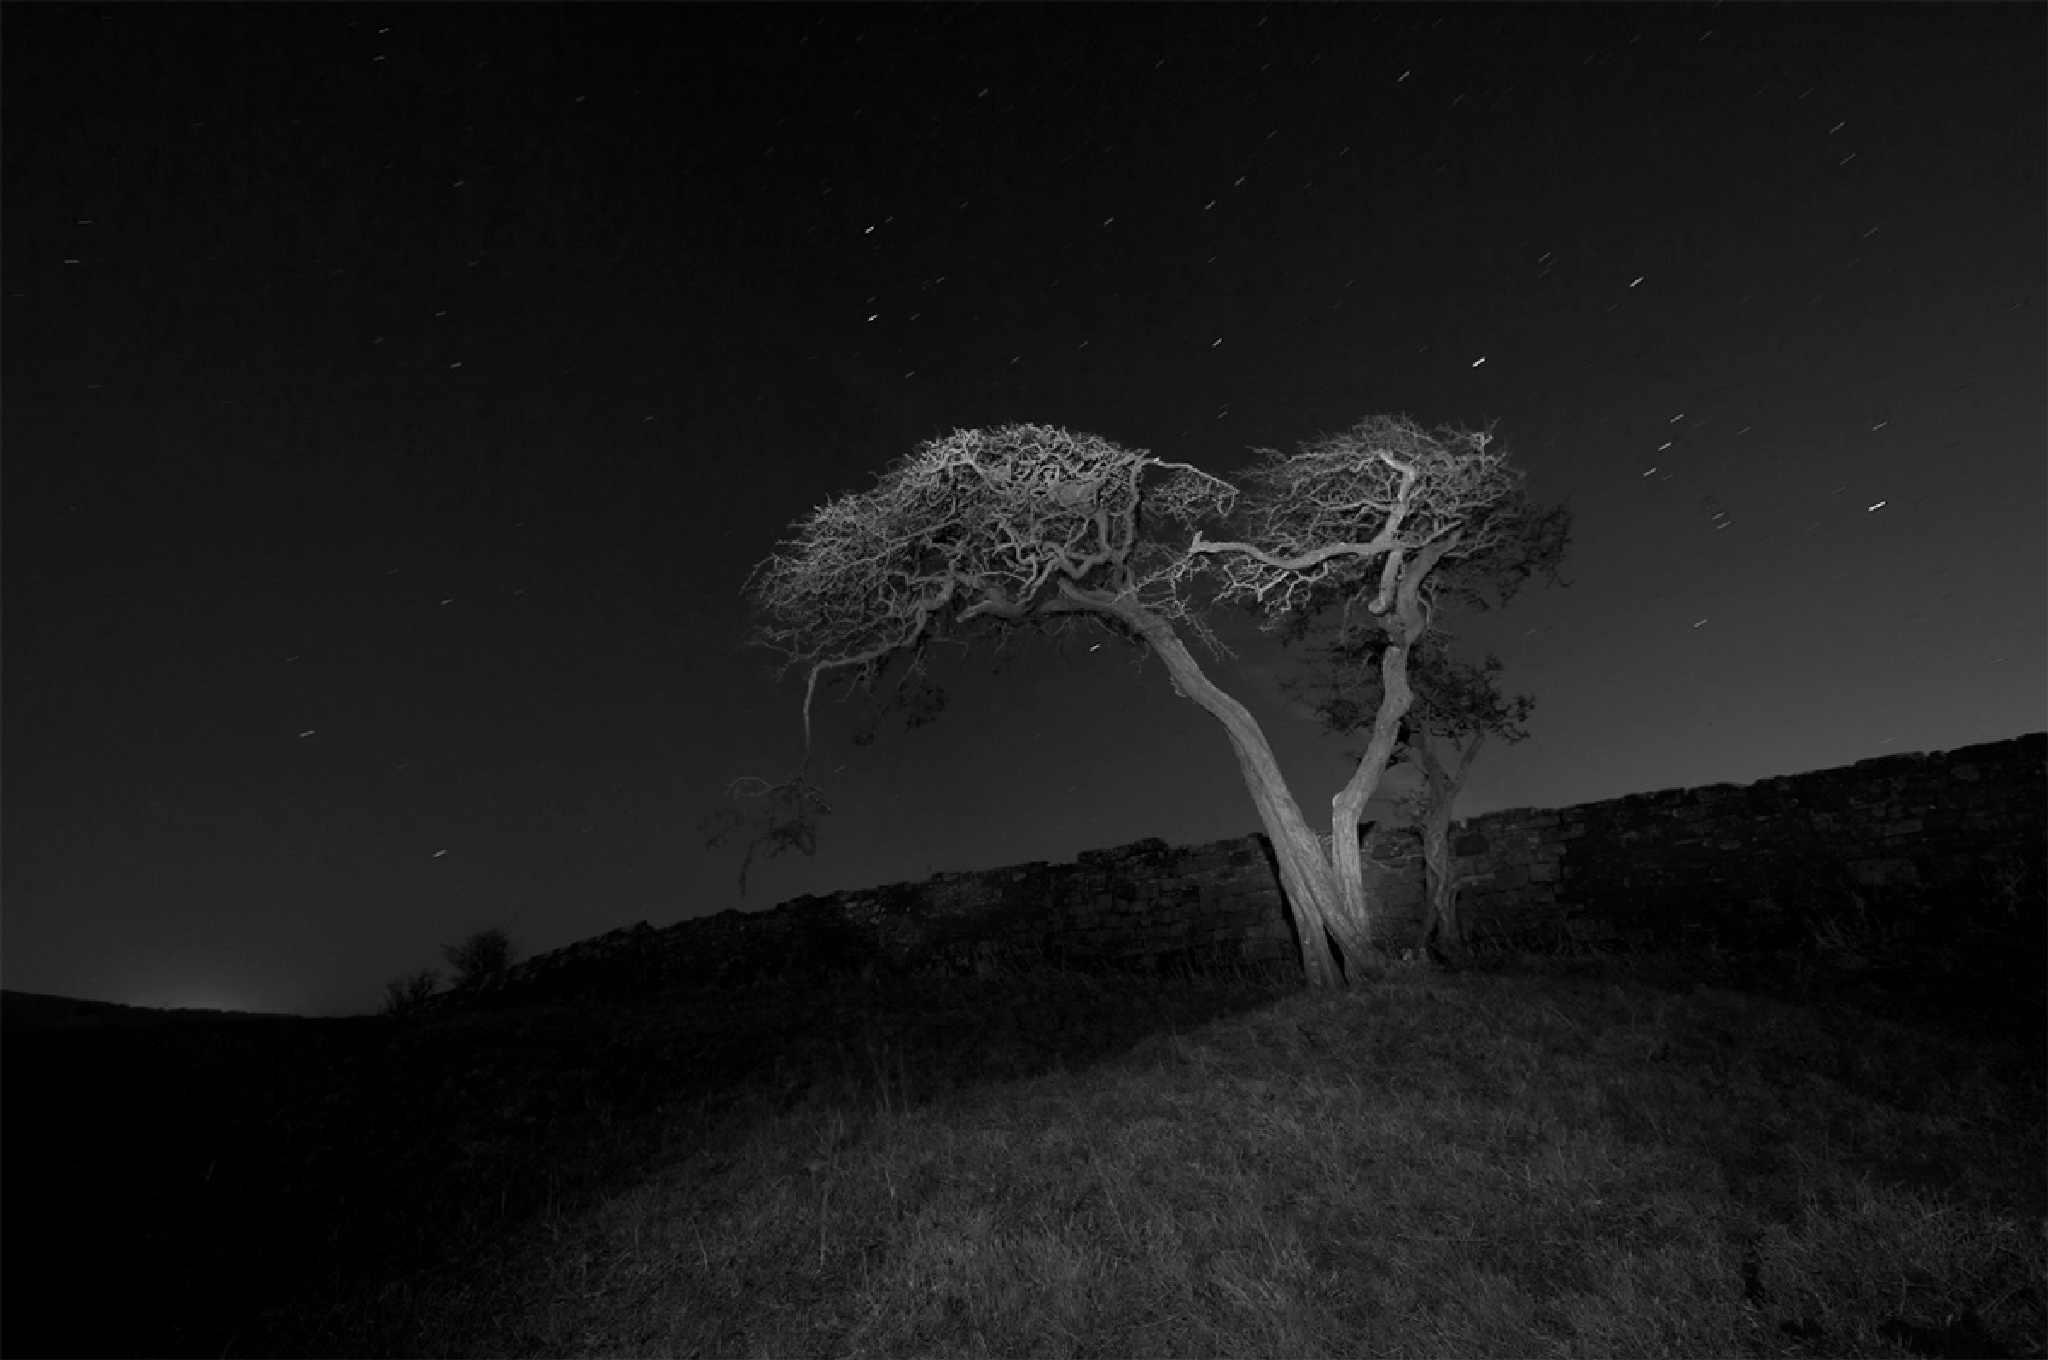 Tree At Night by Steve Phelps